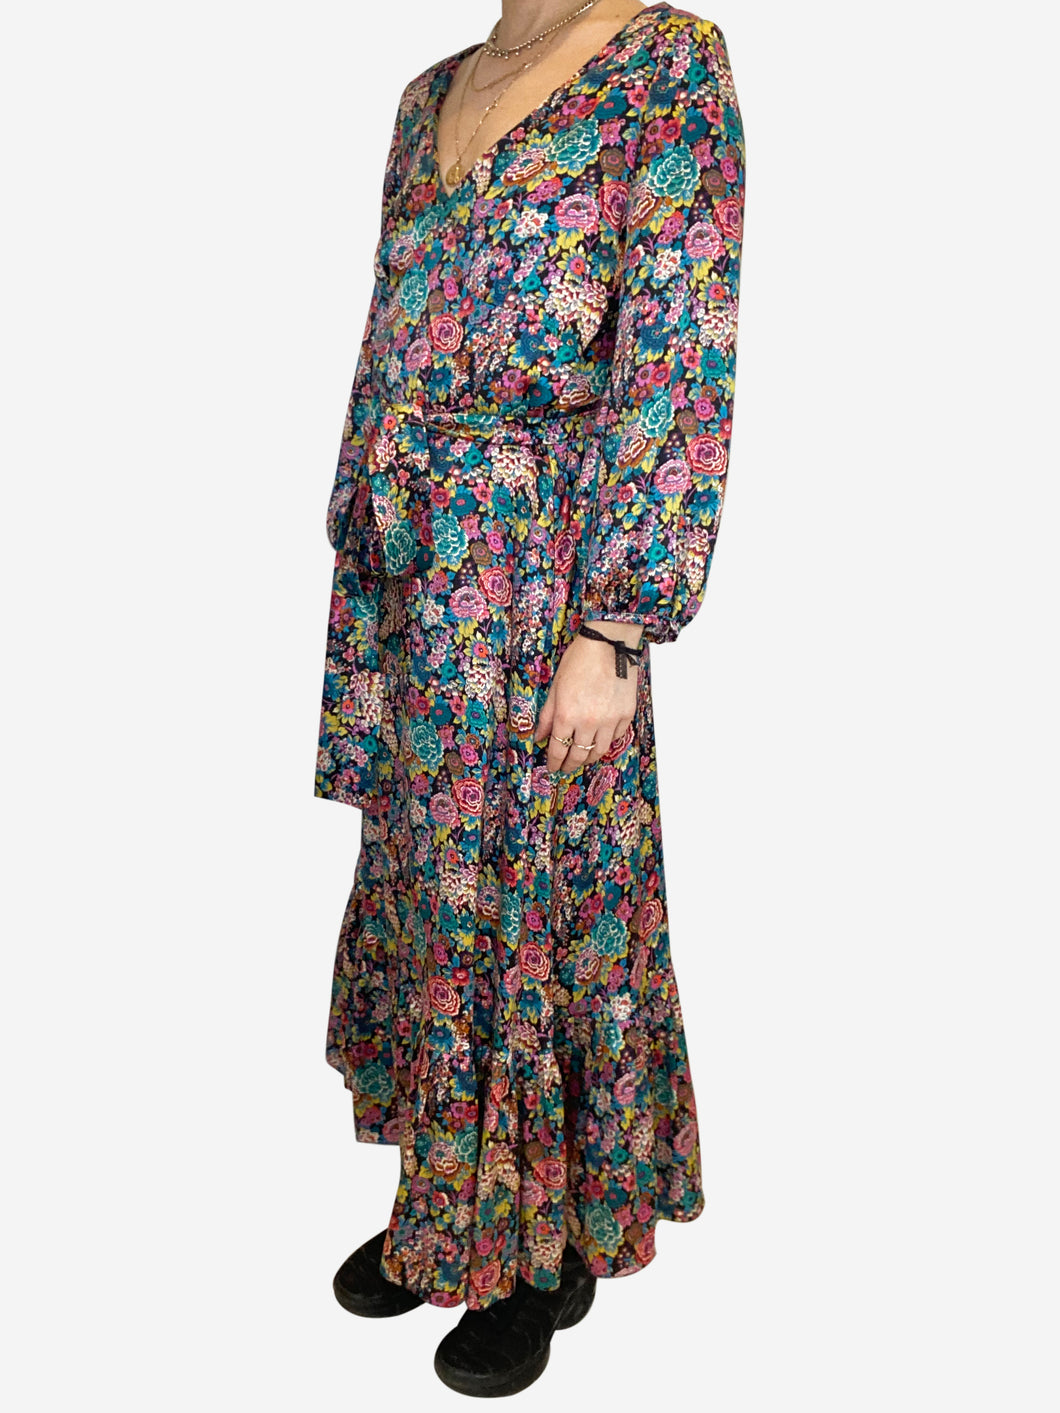 Blue and pink long sleeve floral belted midi dress - size UK 10